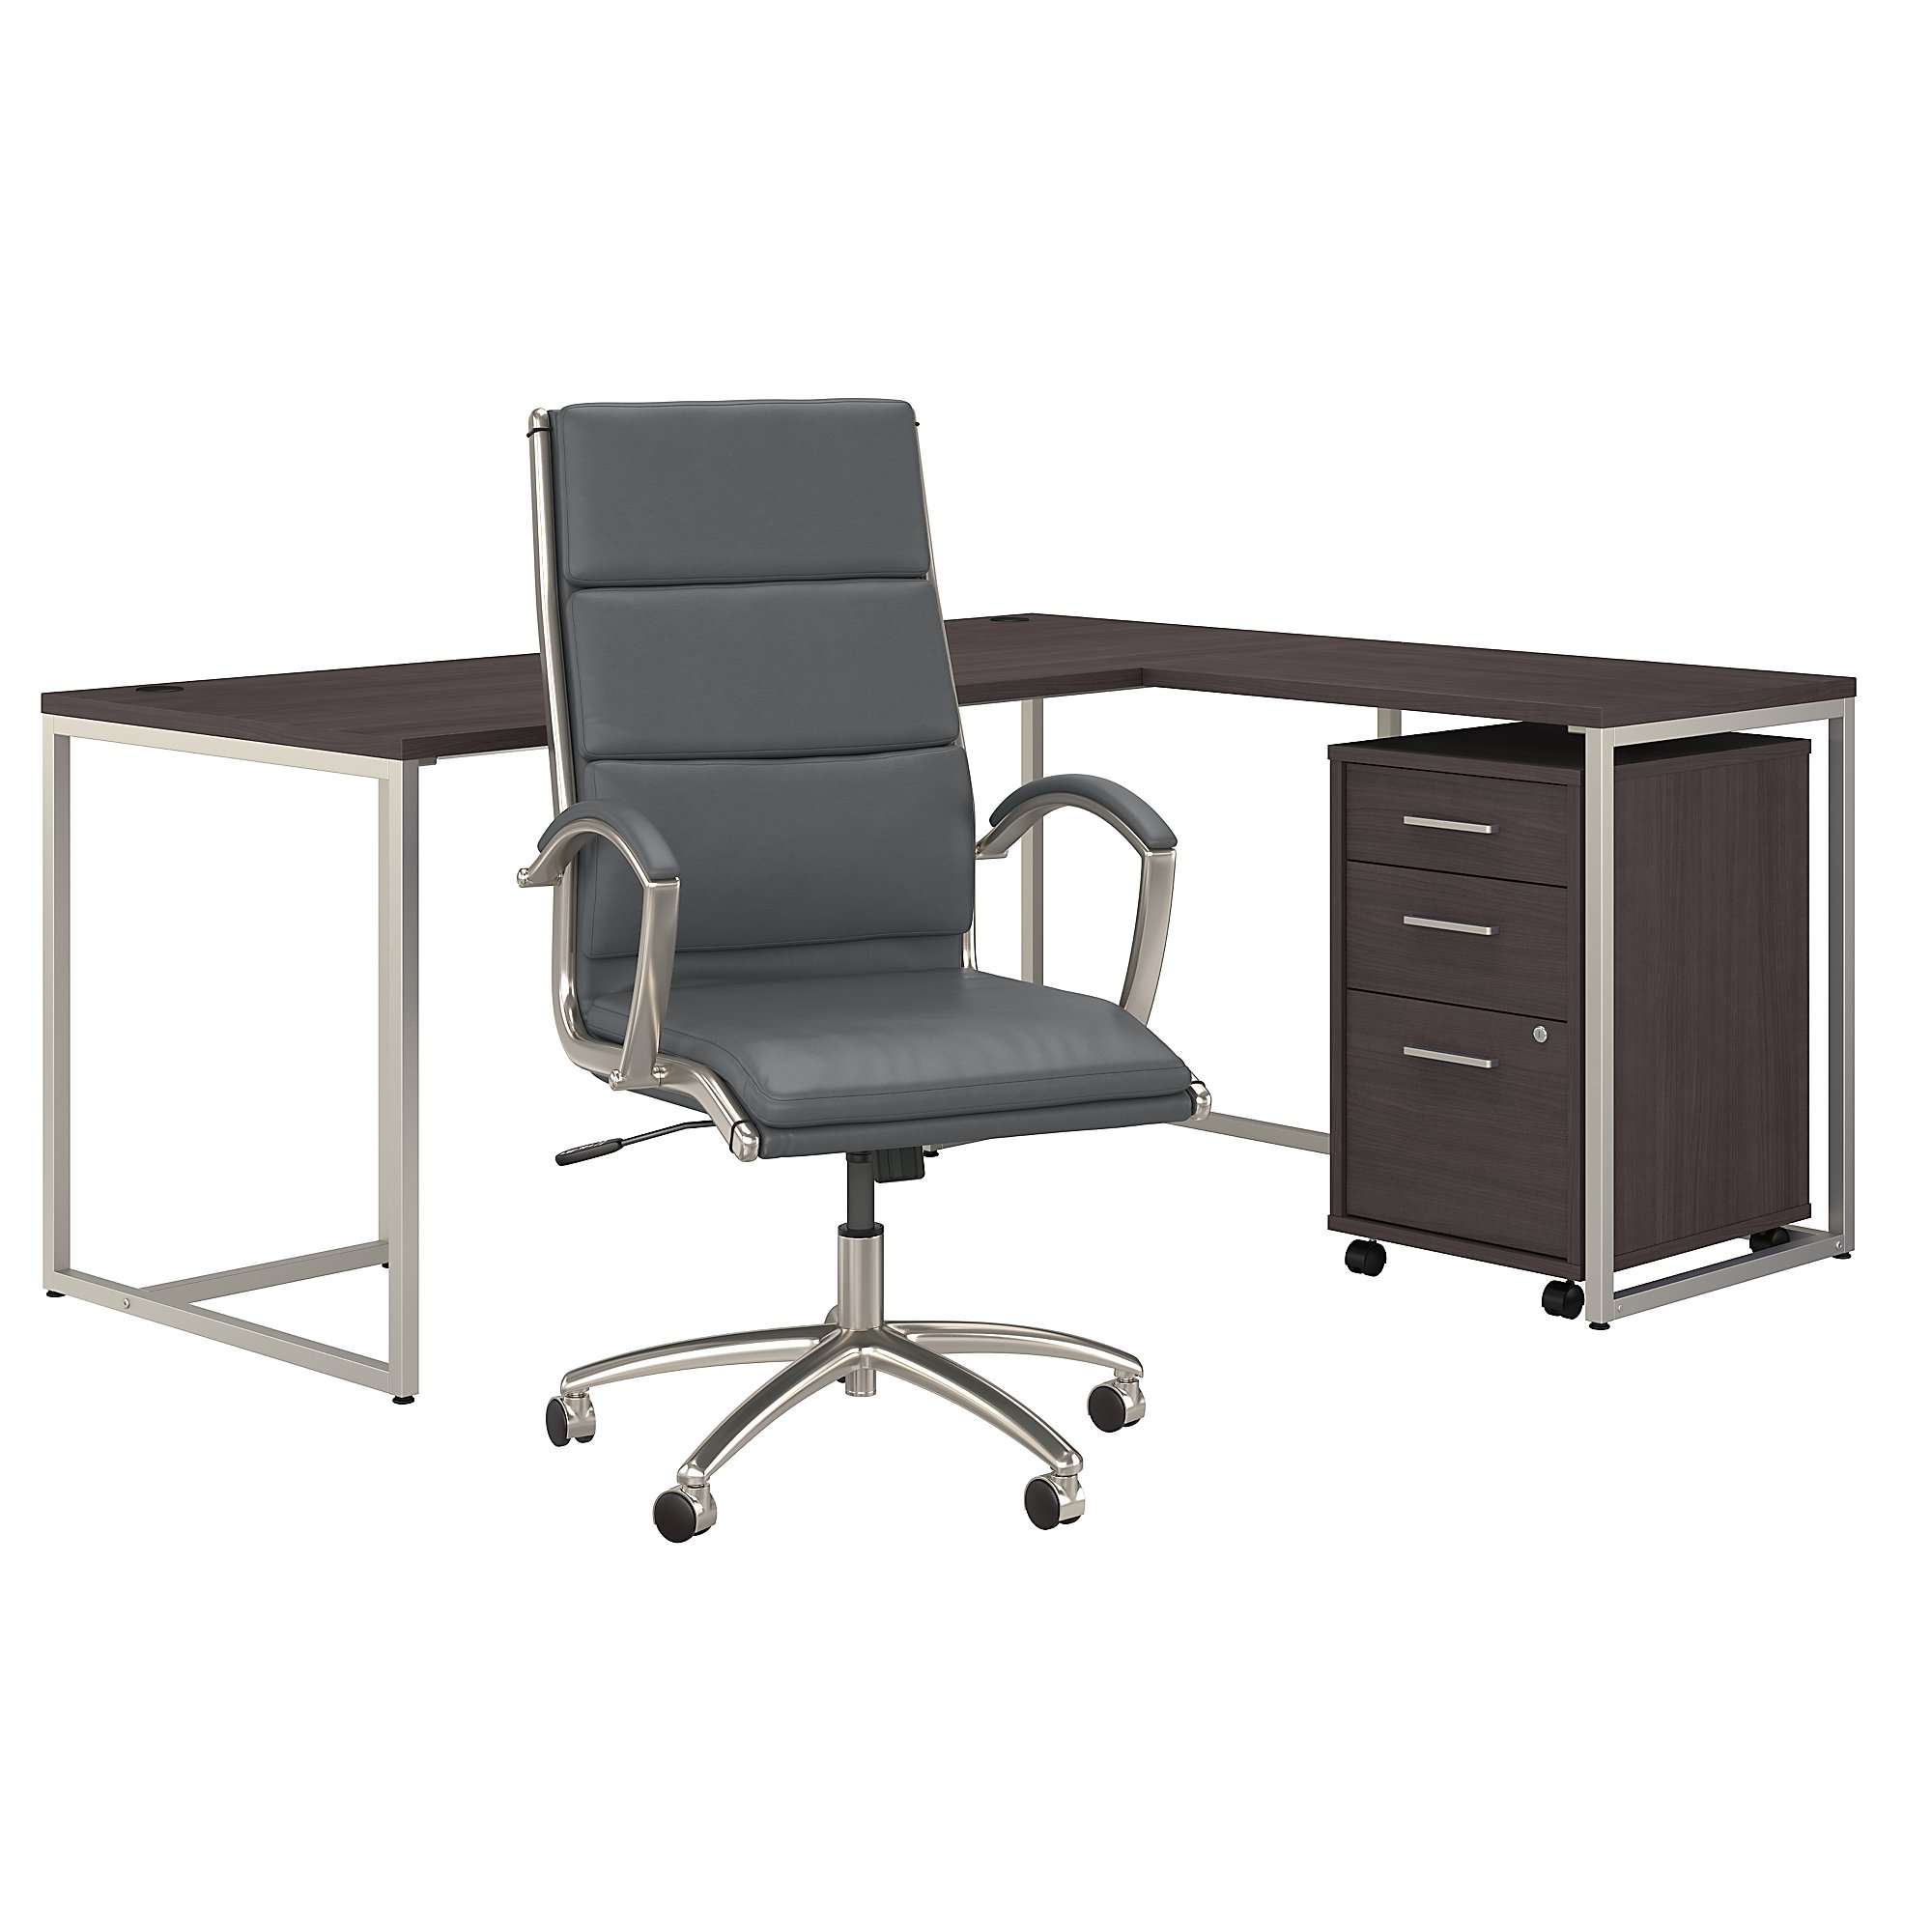 method by kathy ireland office furniture and chair set in storm gray